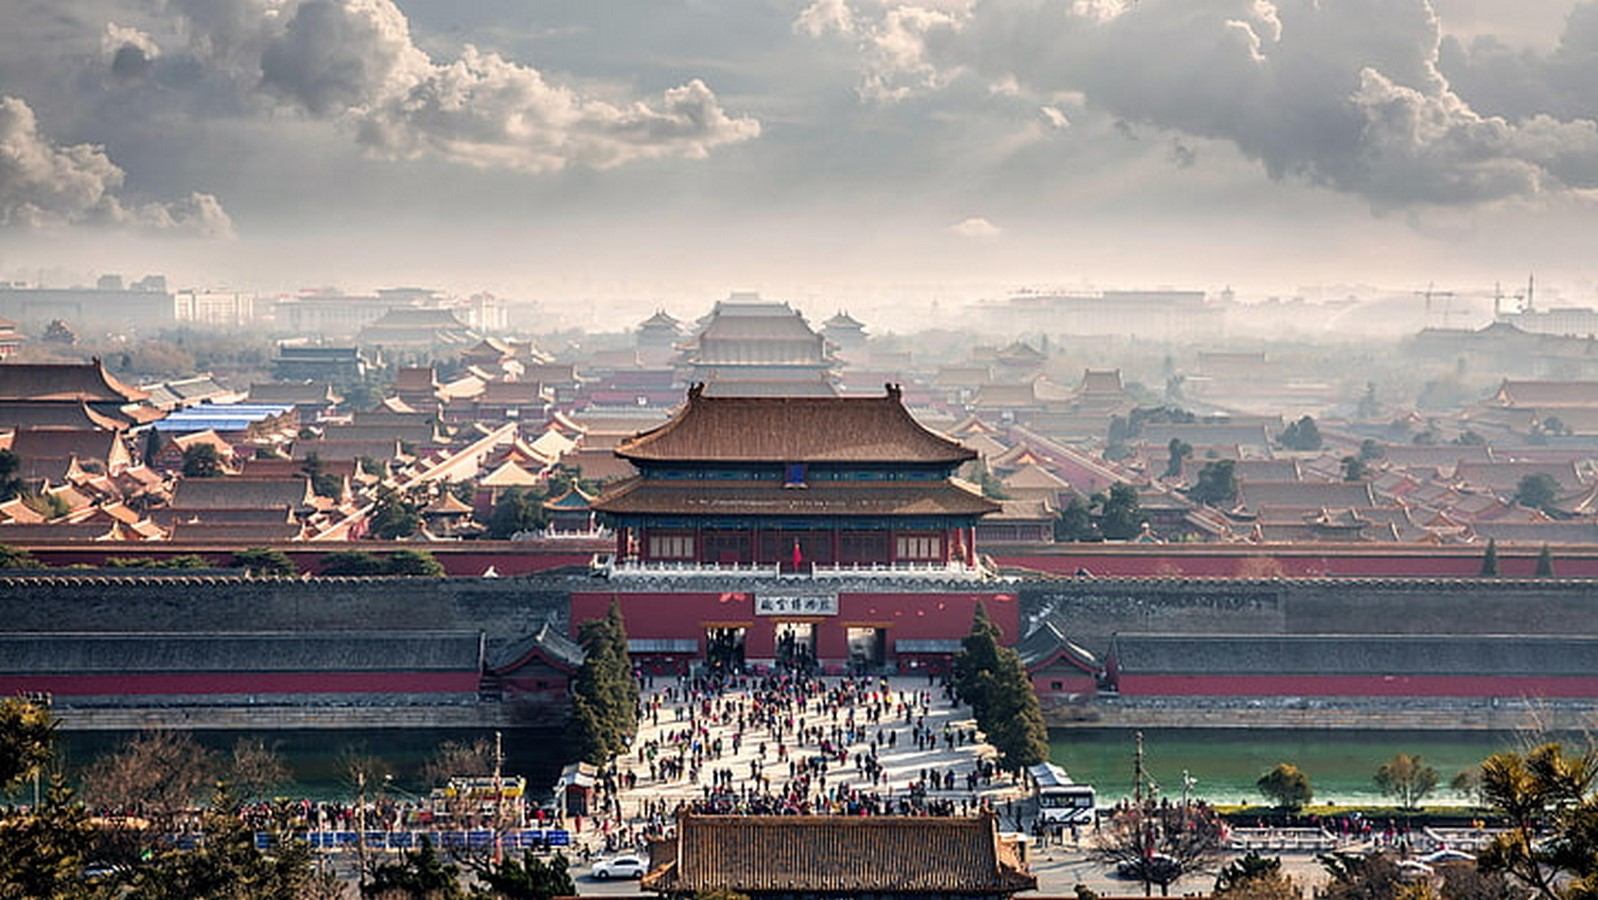 10 Things we can learn from Chinese Architecture - Sheet5